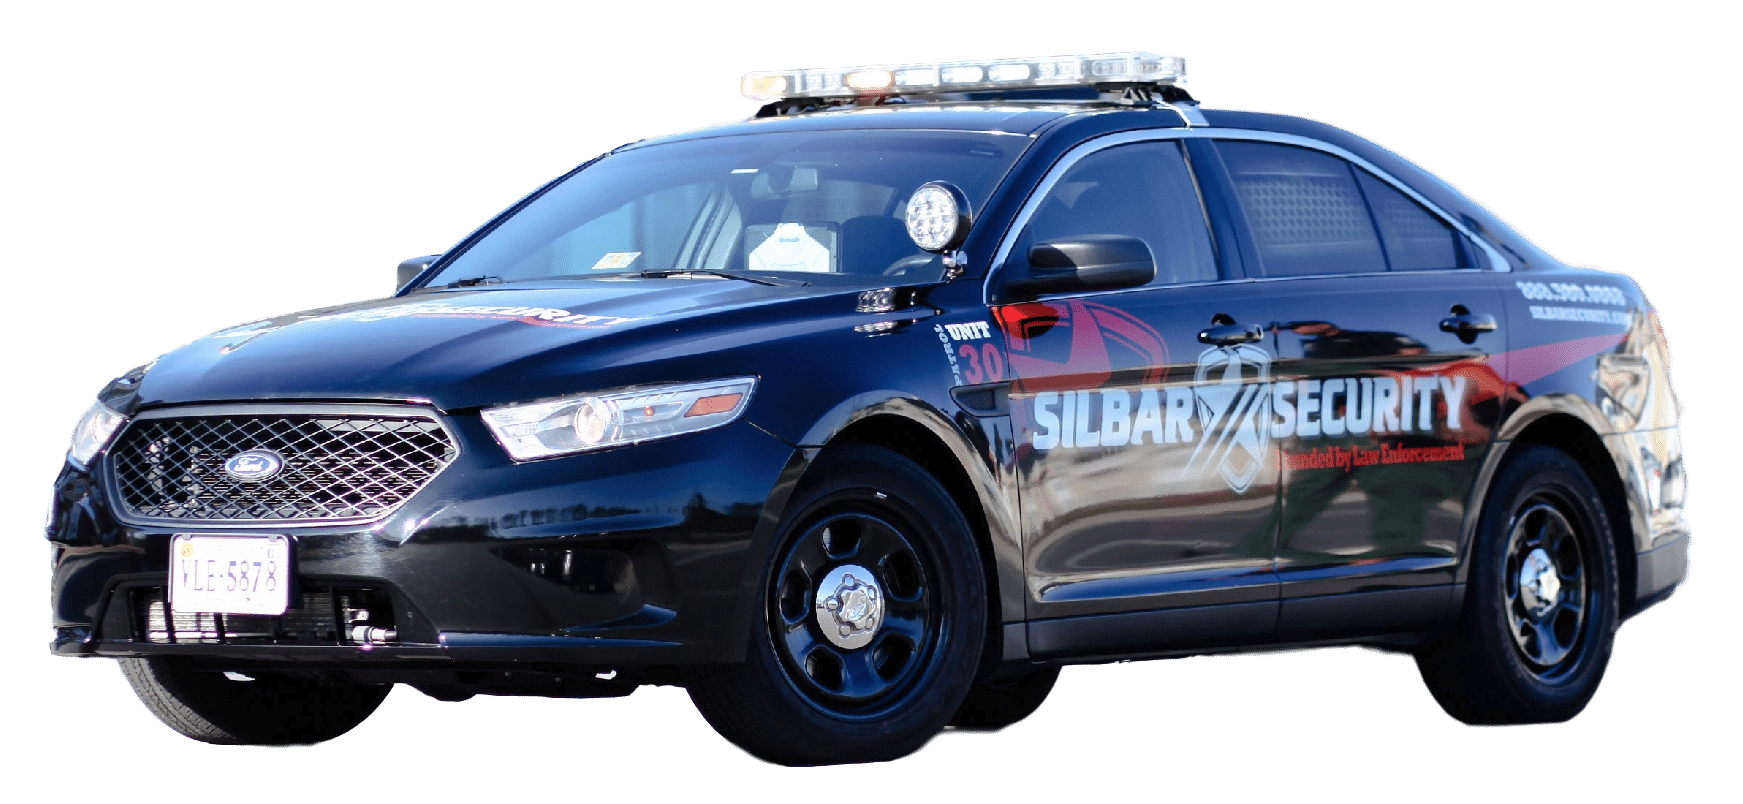 Silbar Security Law Enforcement Grade Vehicles